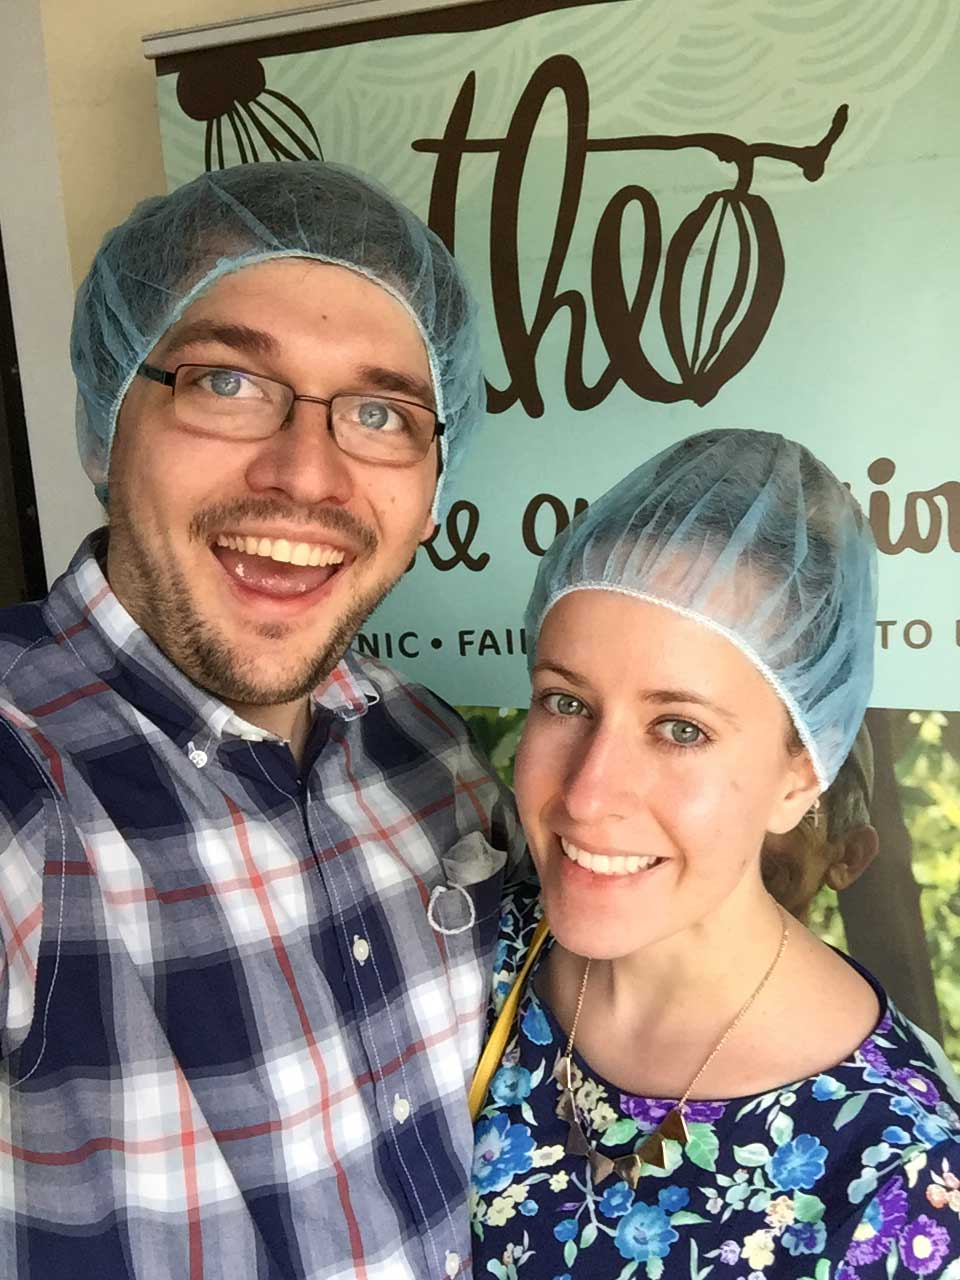 drive-swim-fly-seattle-washington-portland-oregon-vacation-2015-selfietrip-theo-chocolate-factory-tour-hair-nets